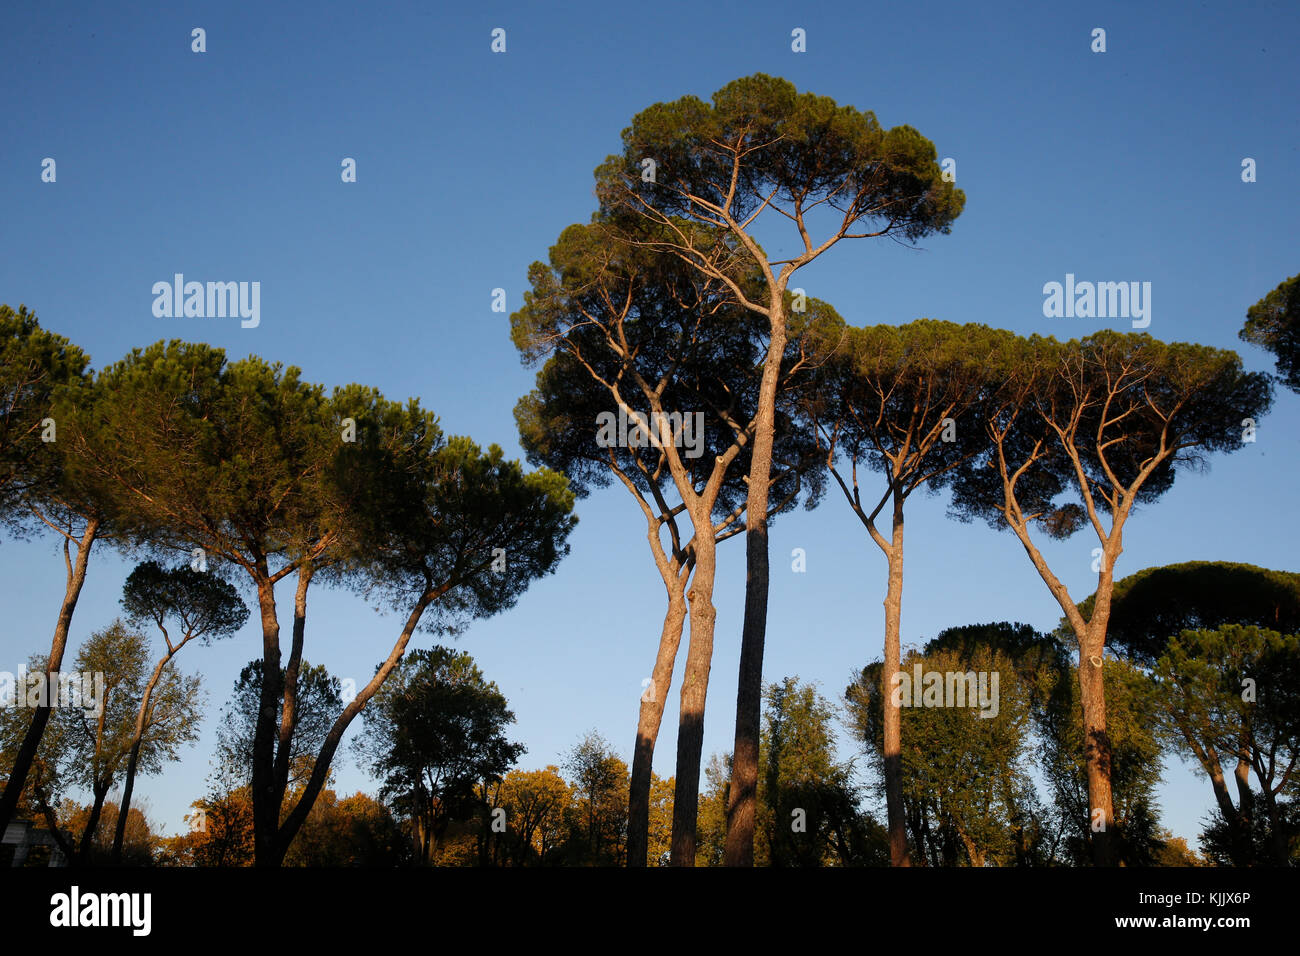 Pine trees in the Villa Borghese, Rome. Italy. - Stock Image